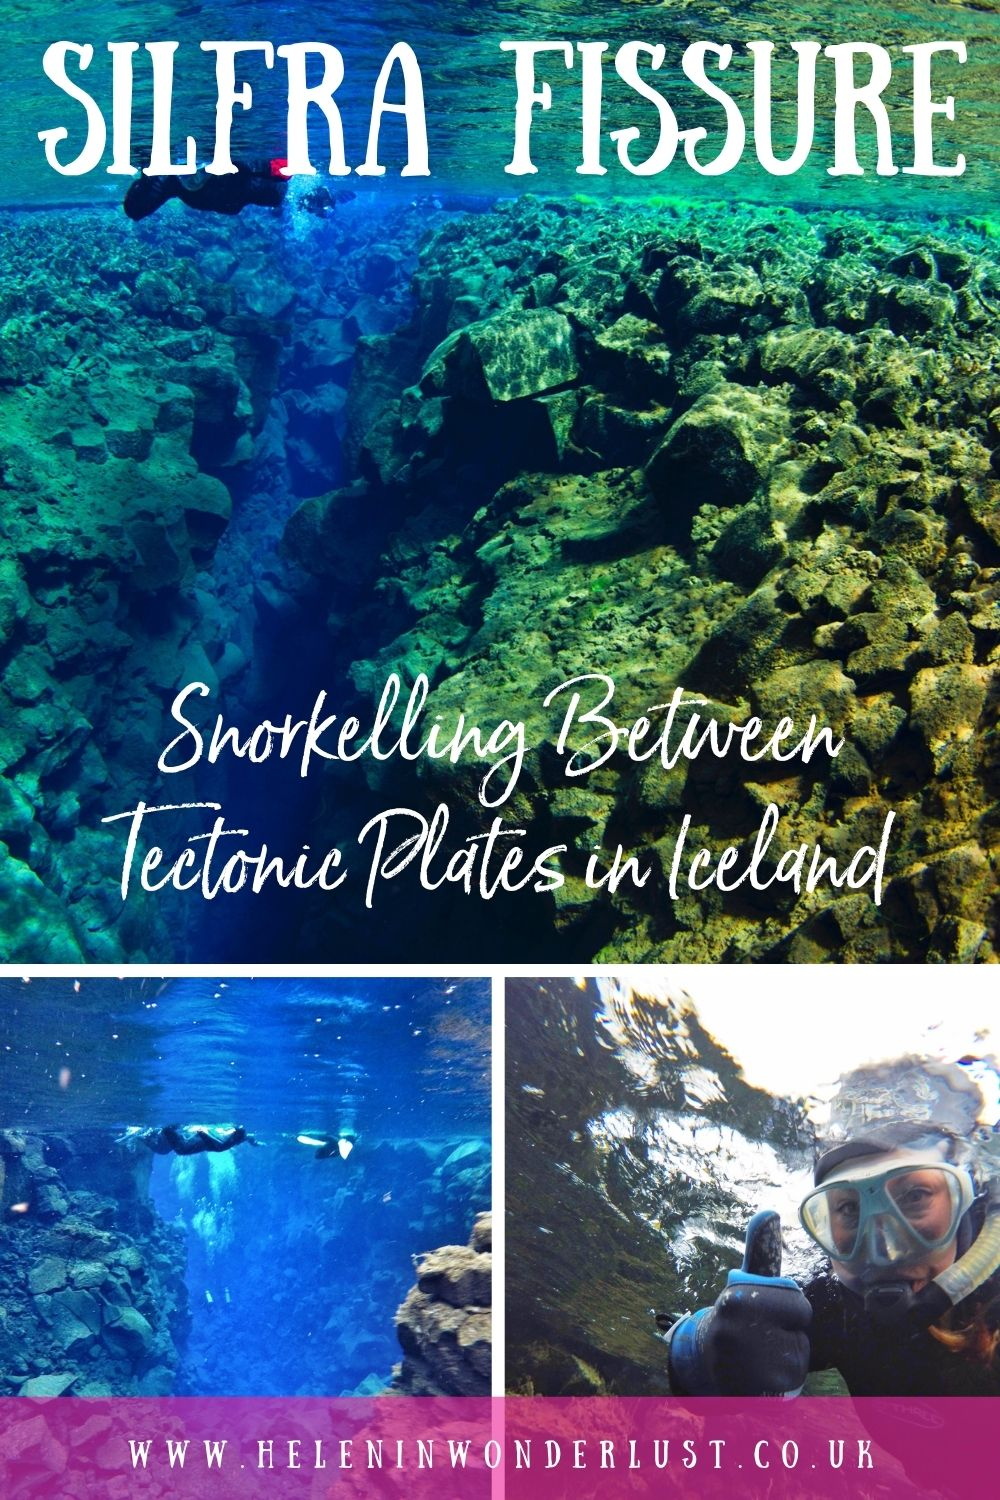 The Silfra Fissure – Snorkelling Between Tectonic Plates in Iceland